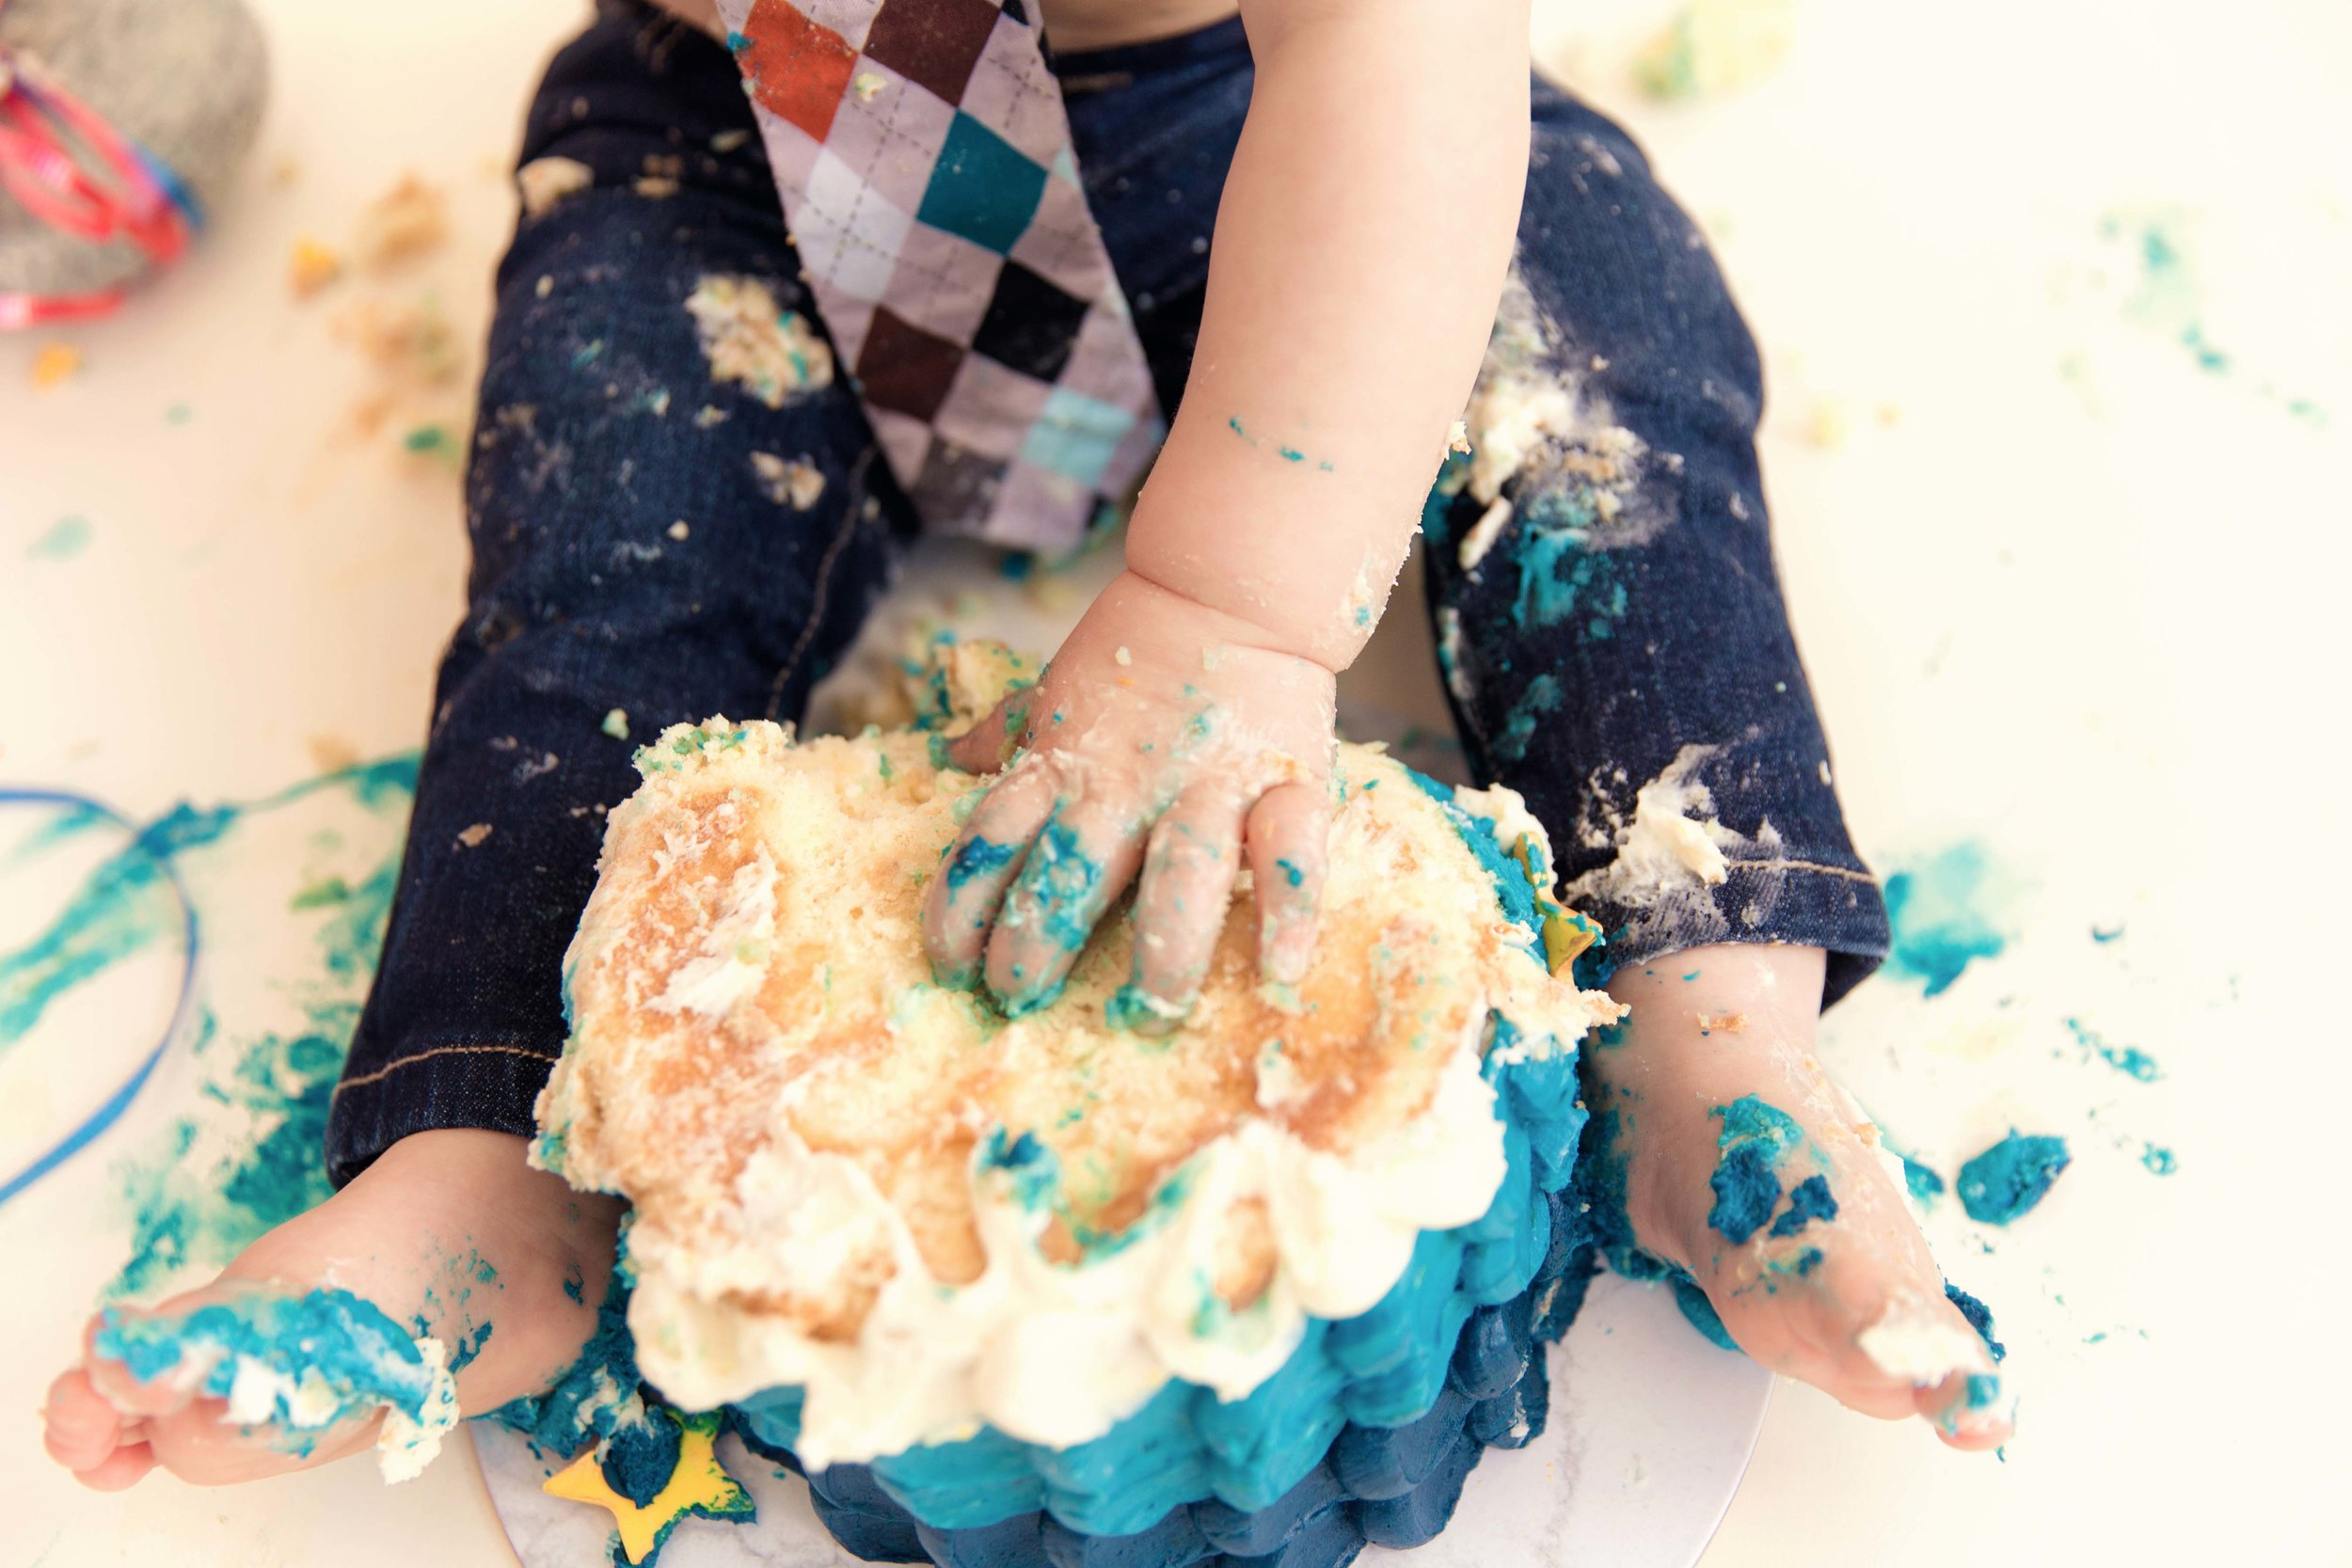 Little feet and a hand covered in a cake. Cakesmash action in Calgary, Alberta